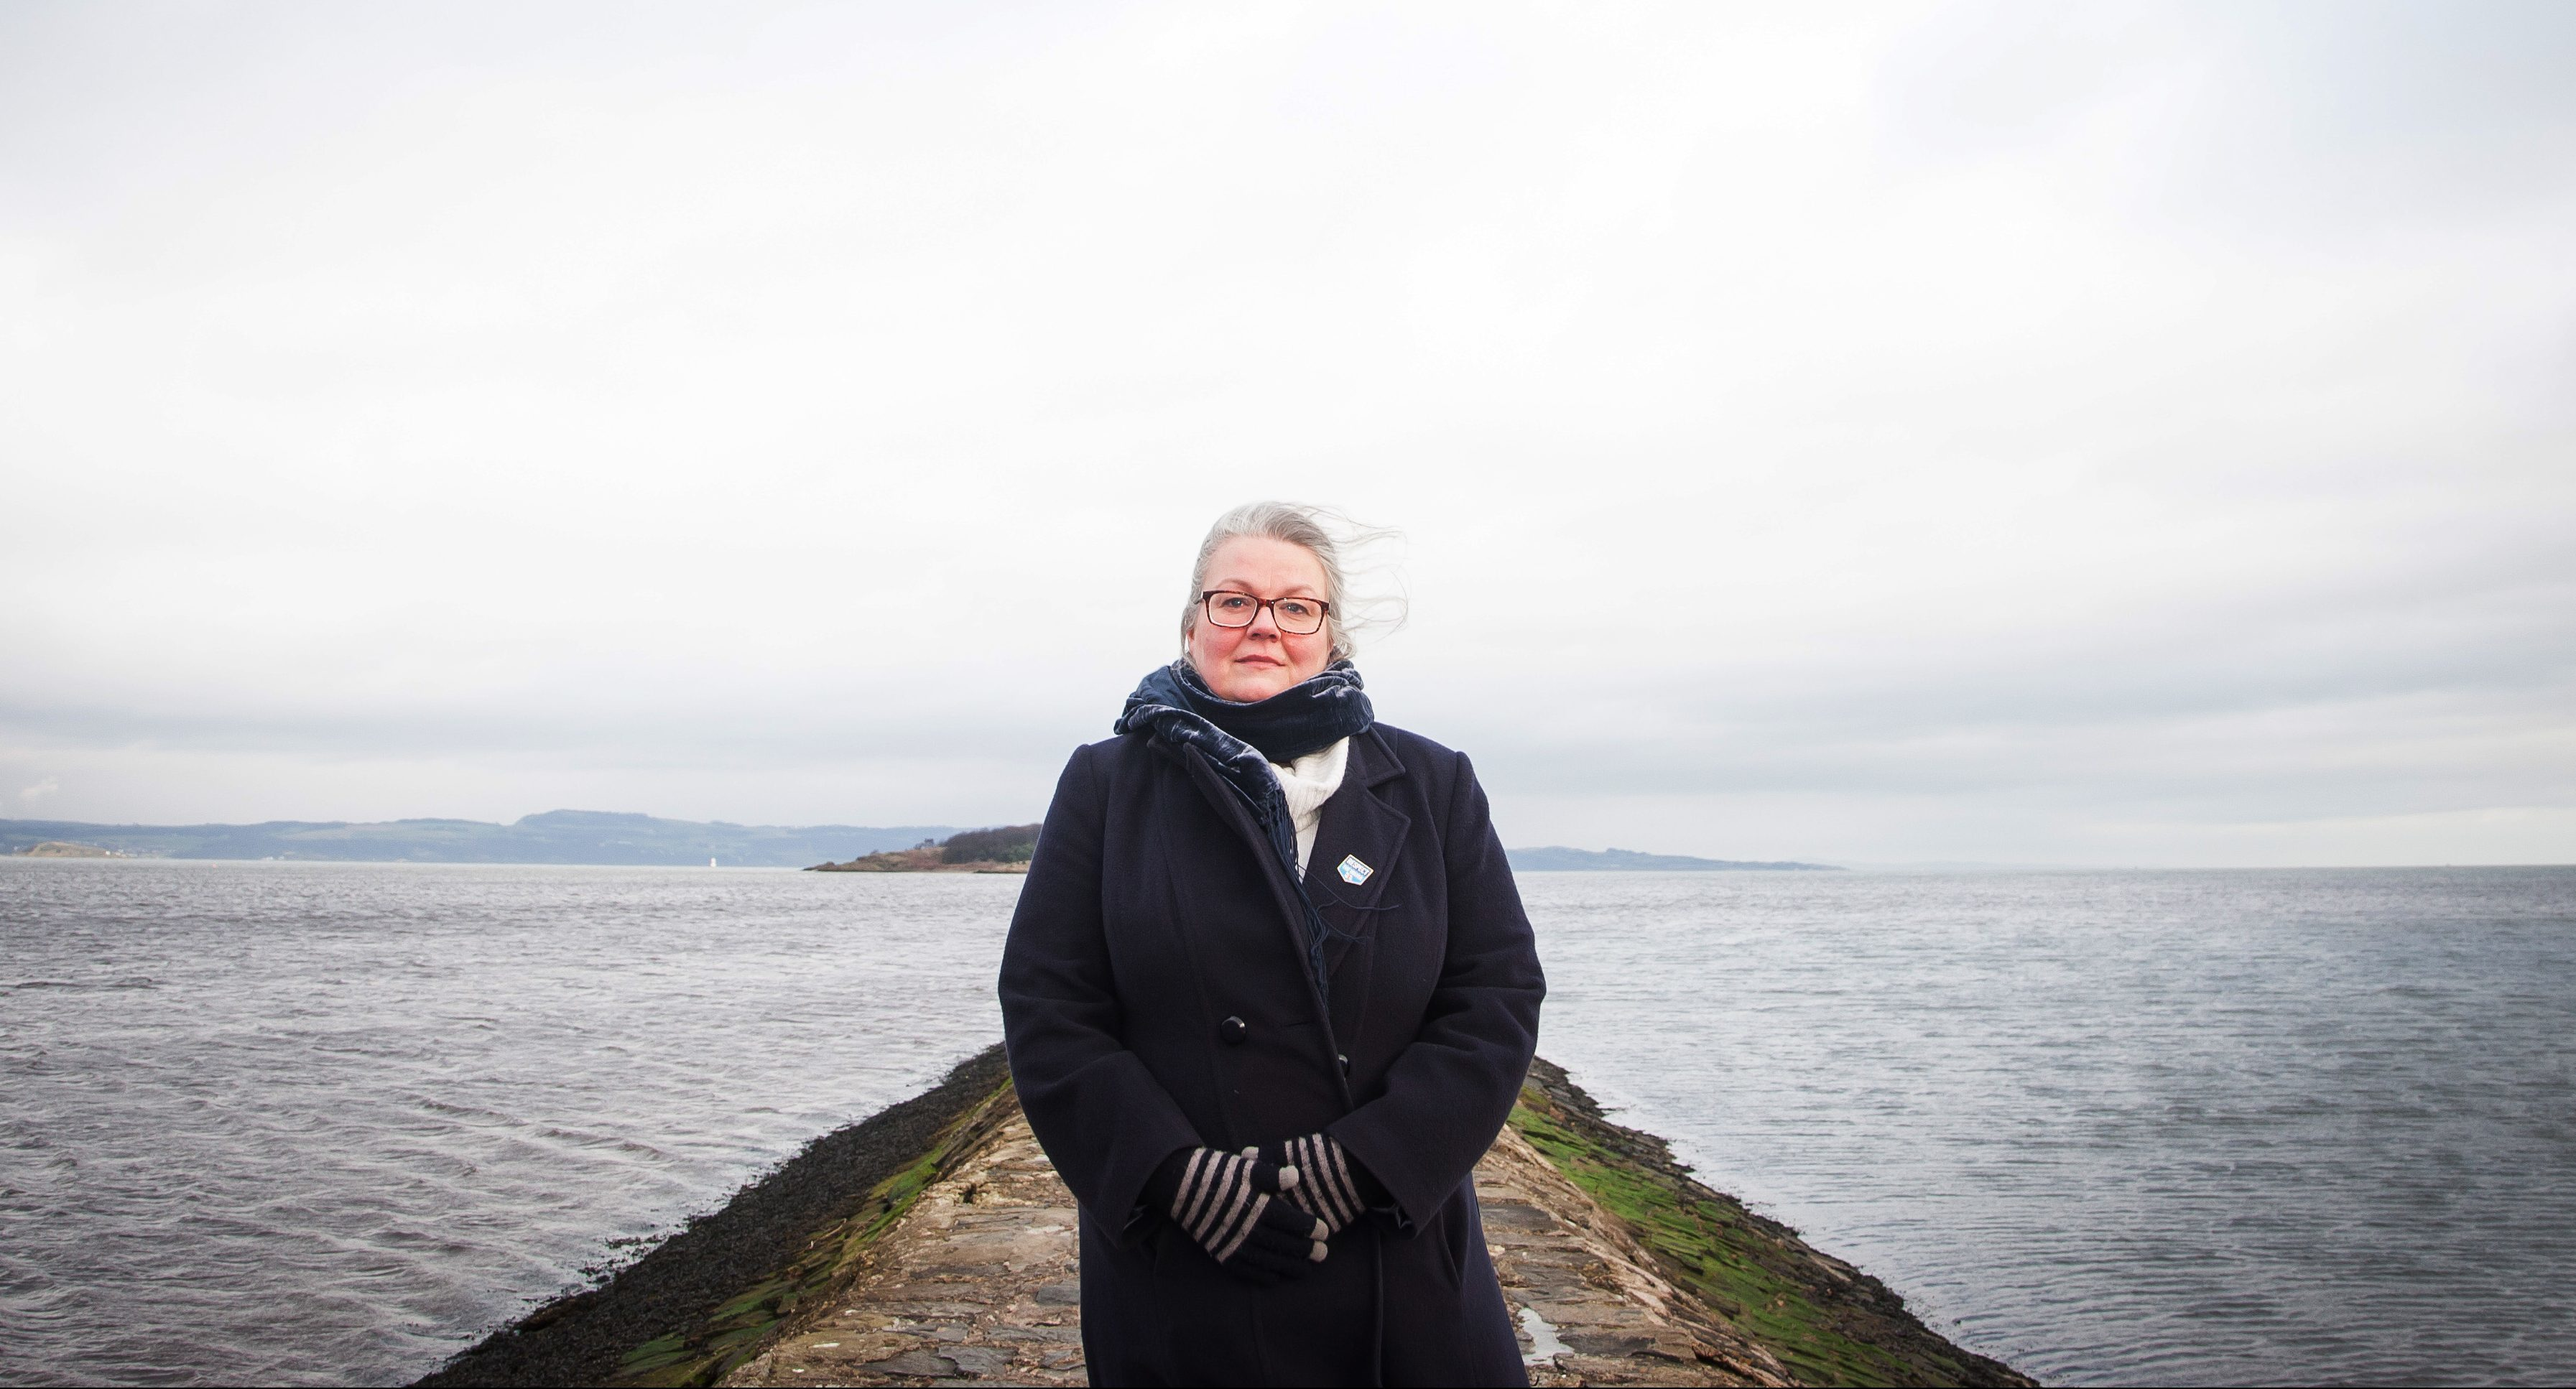 Gillian Barclay launches Water Safety Scotland's drowning prevention strategy.